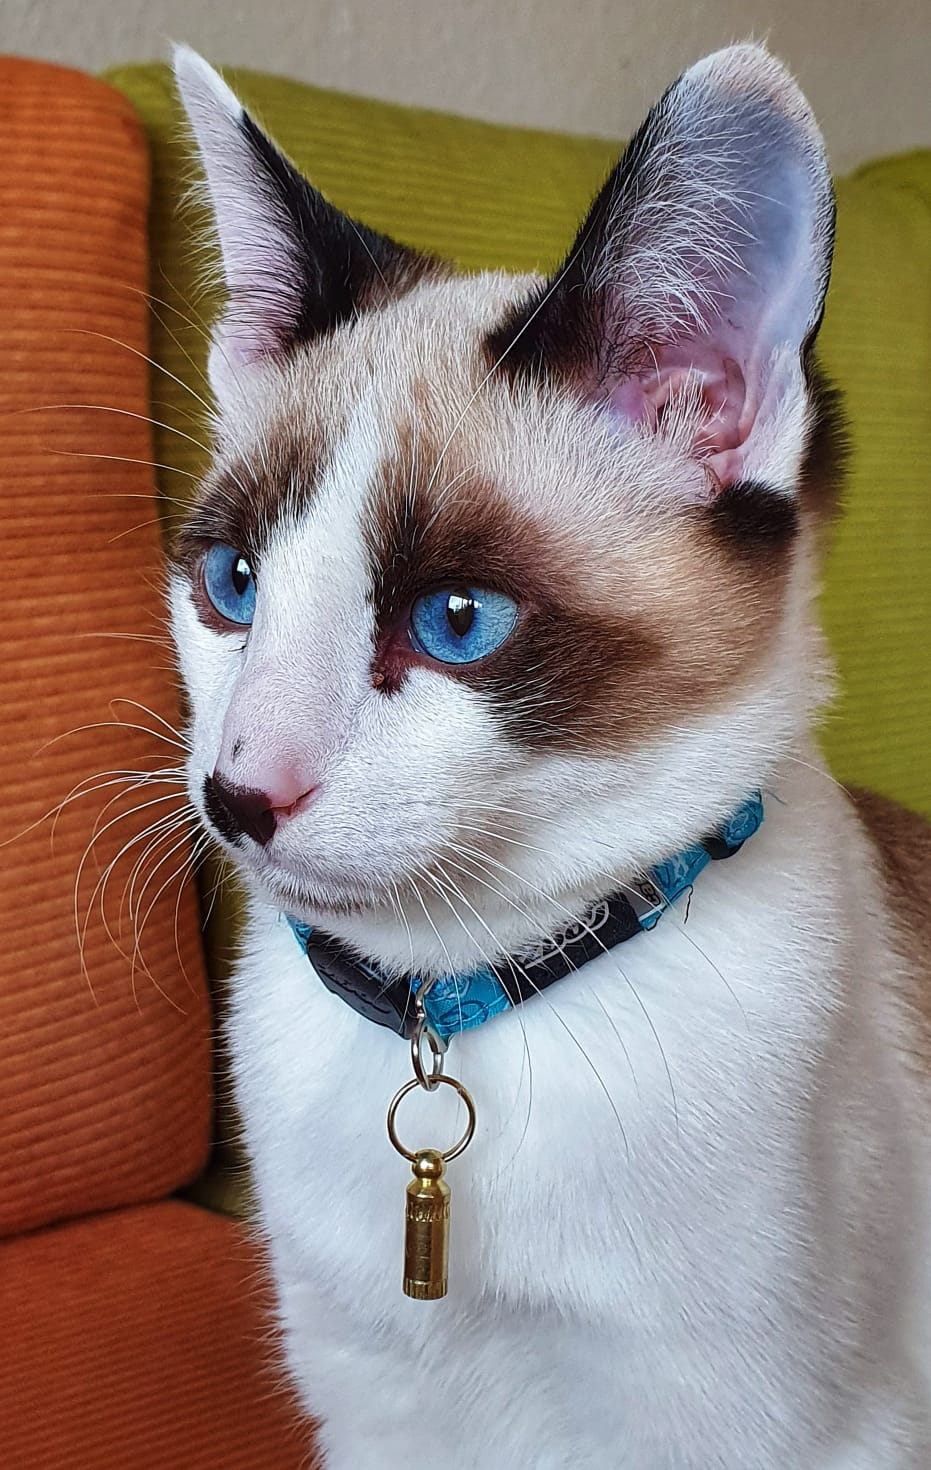 Download Adorable Cat Pictures Photos Images pfV-e1aYR